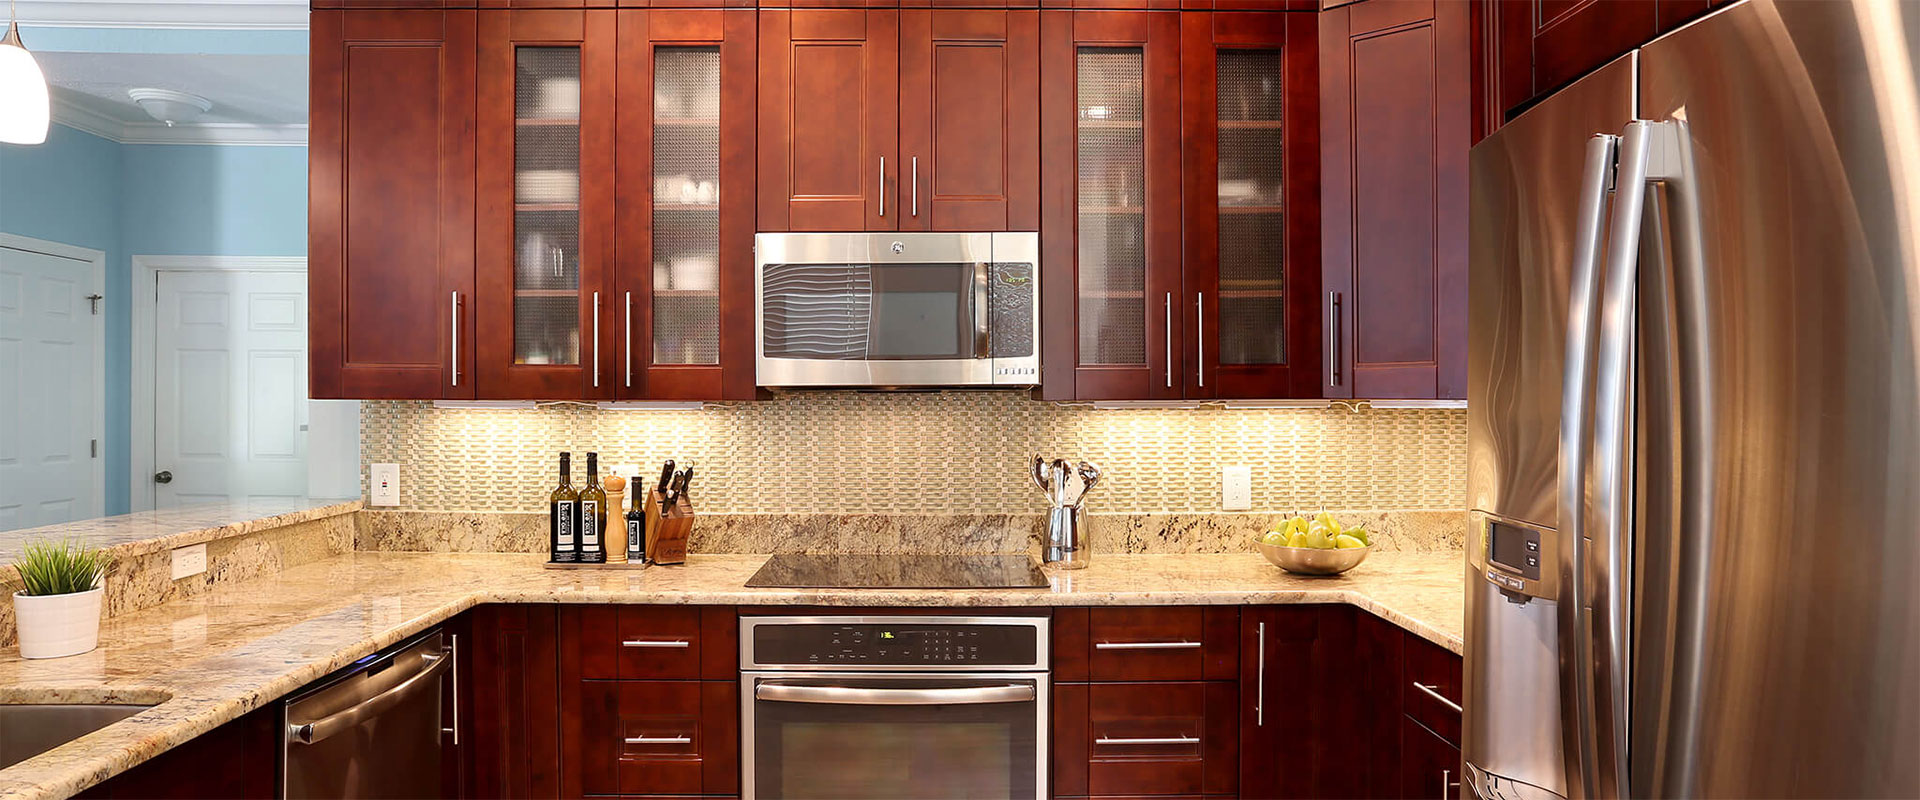 kitchen c walmart aid mixer cabinets granite countertops remodeling tampa fl beautiful